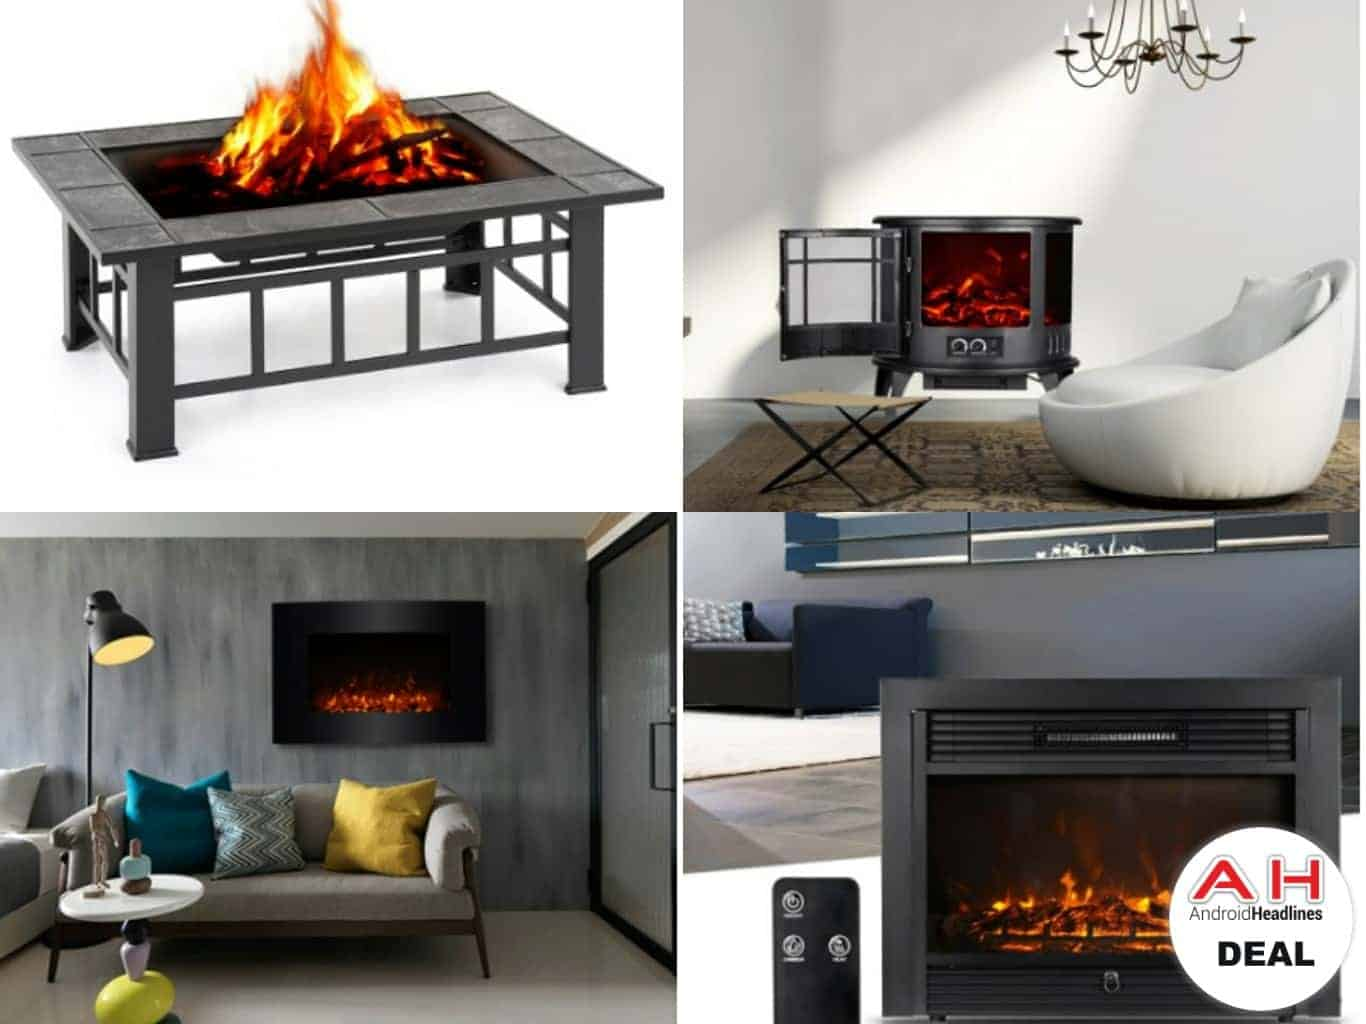 heaters on buying home image ideas sale canada how featured fireplace to en electric fireplaces guides decor the depot